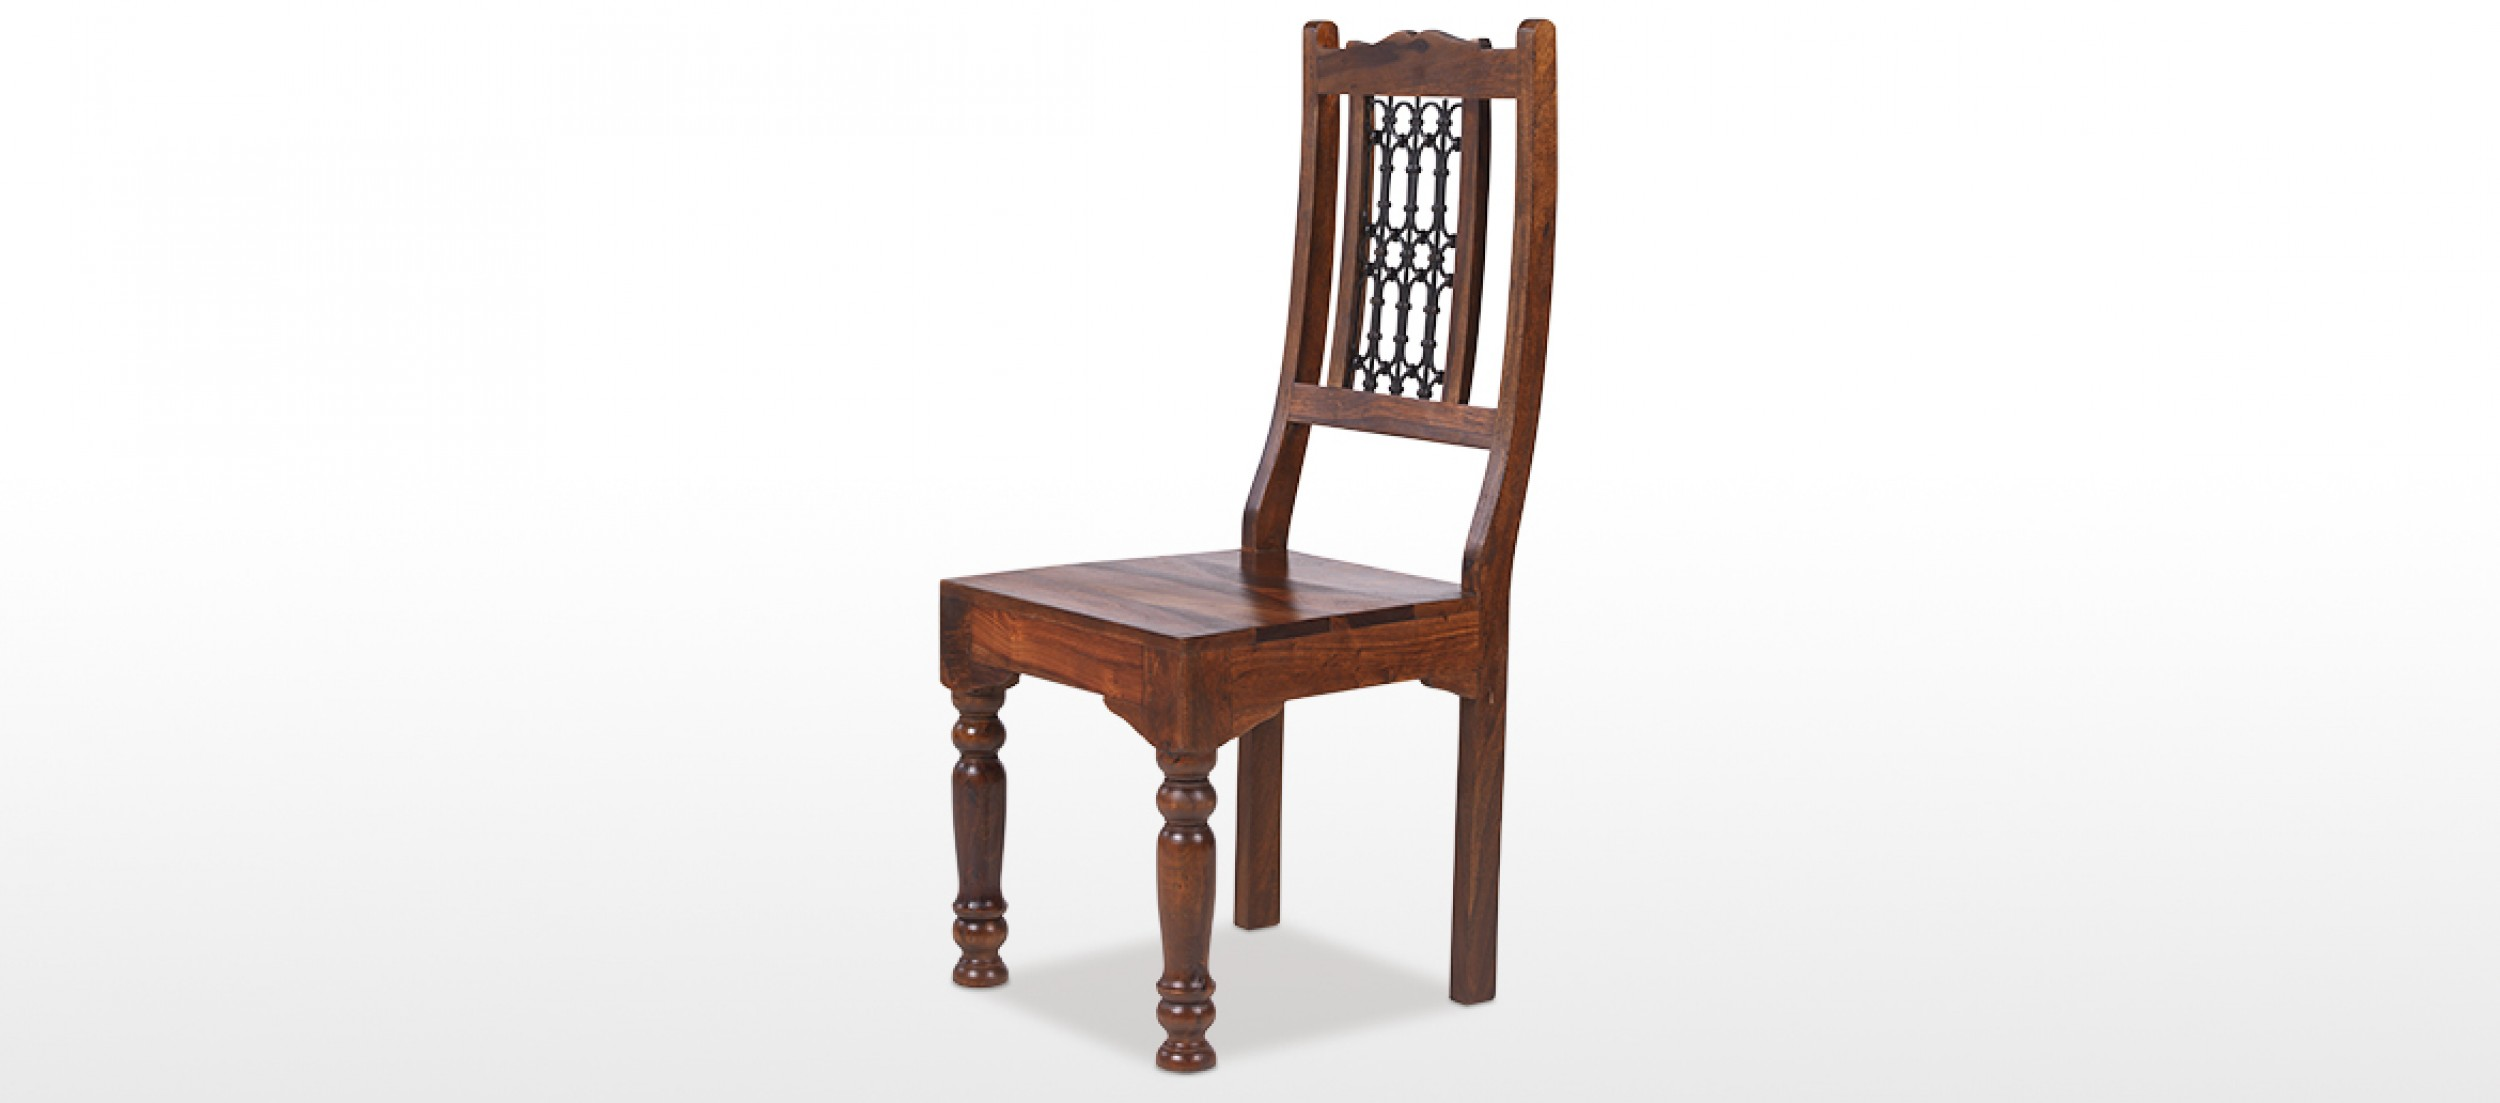 chair design back angle hanging in living room jali sheesham low ironwork dining chairs pair